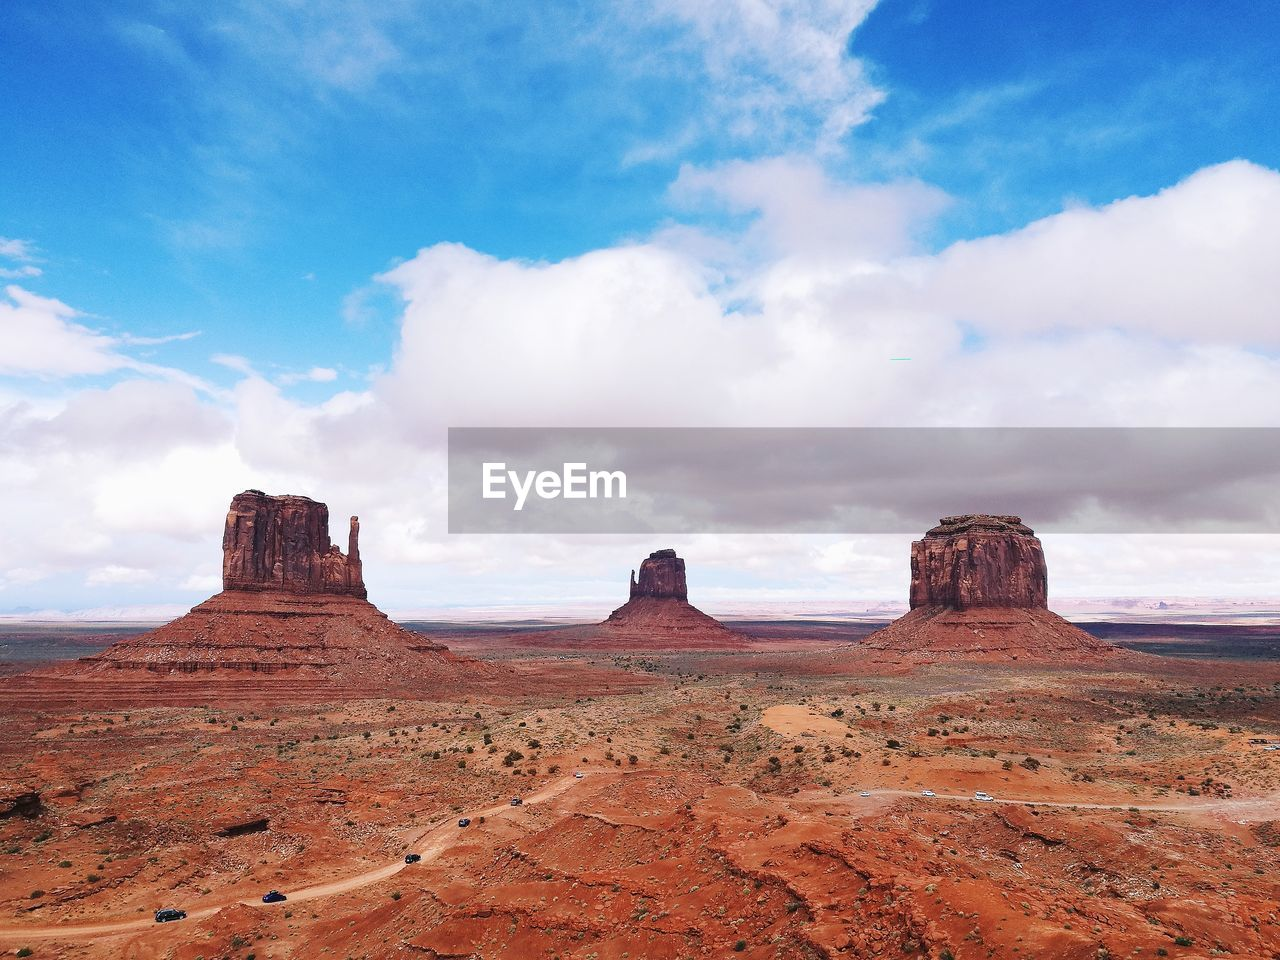 Signature viewpoint at monument valley